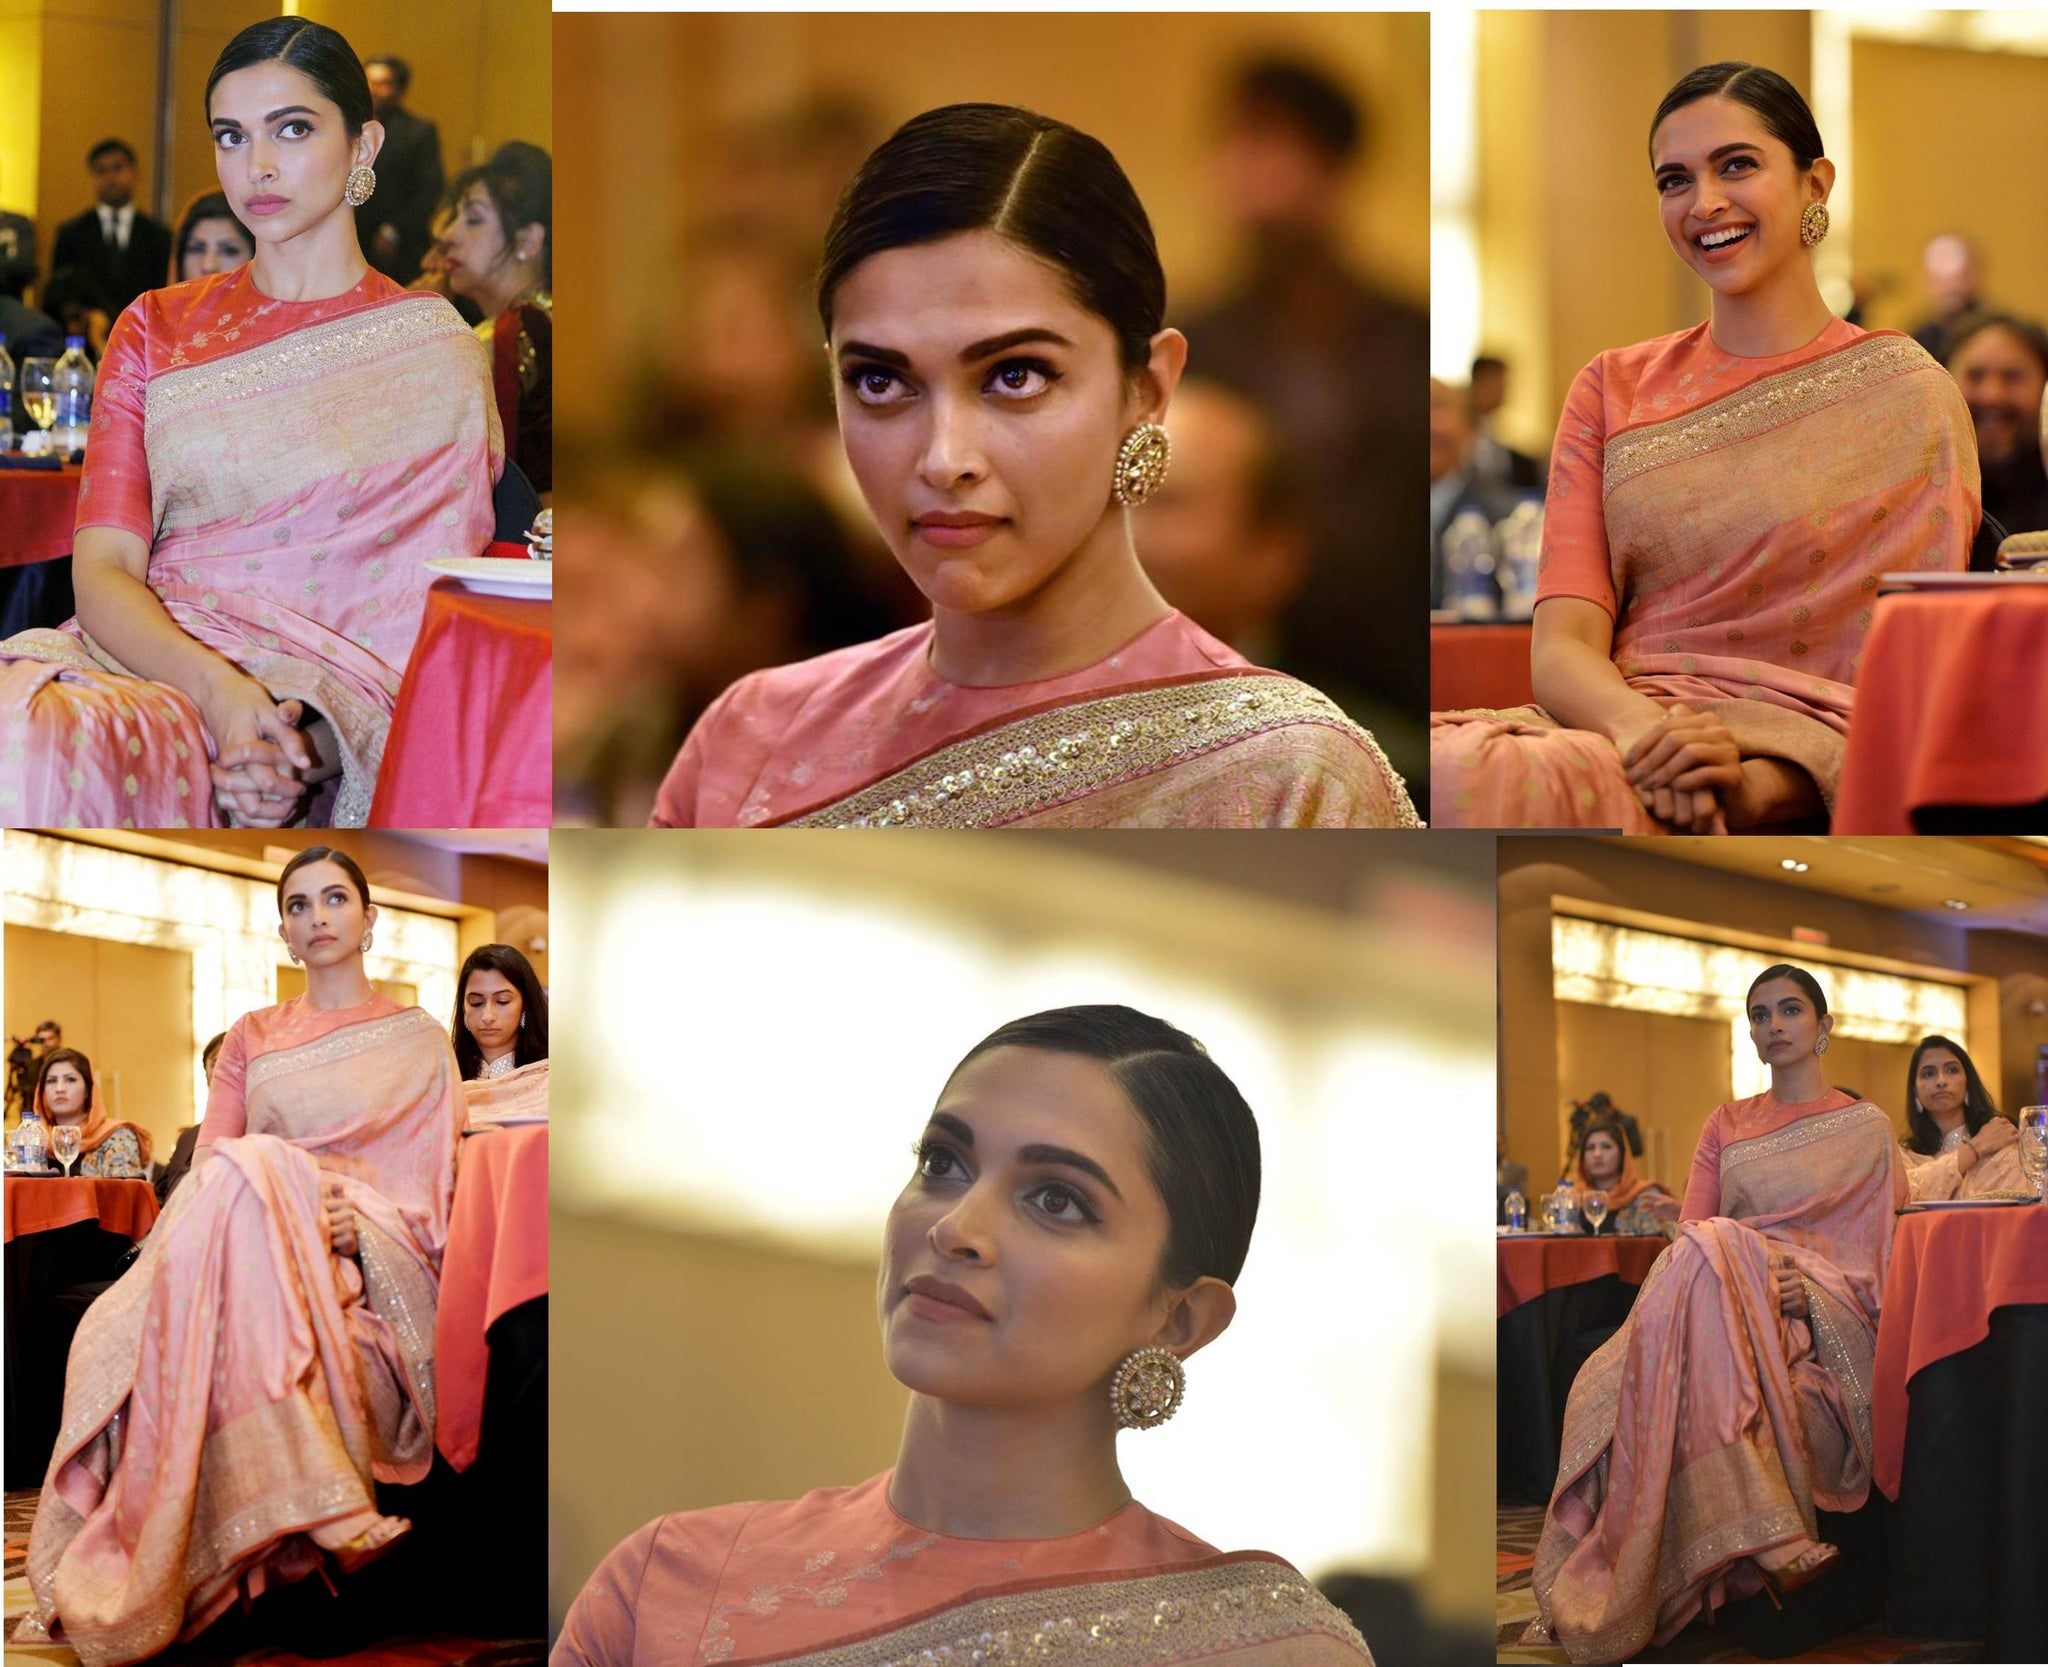 Deepika Padukone Hit The Style Game in Sabyasachi Heritage Collection's Banarasi Saree